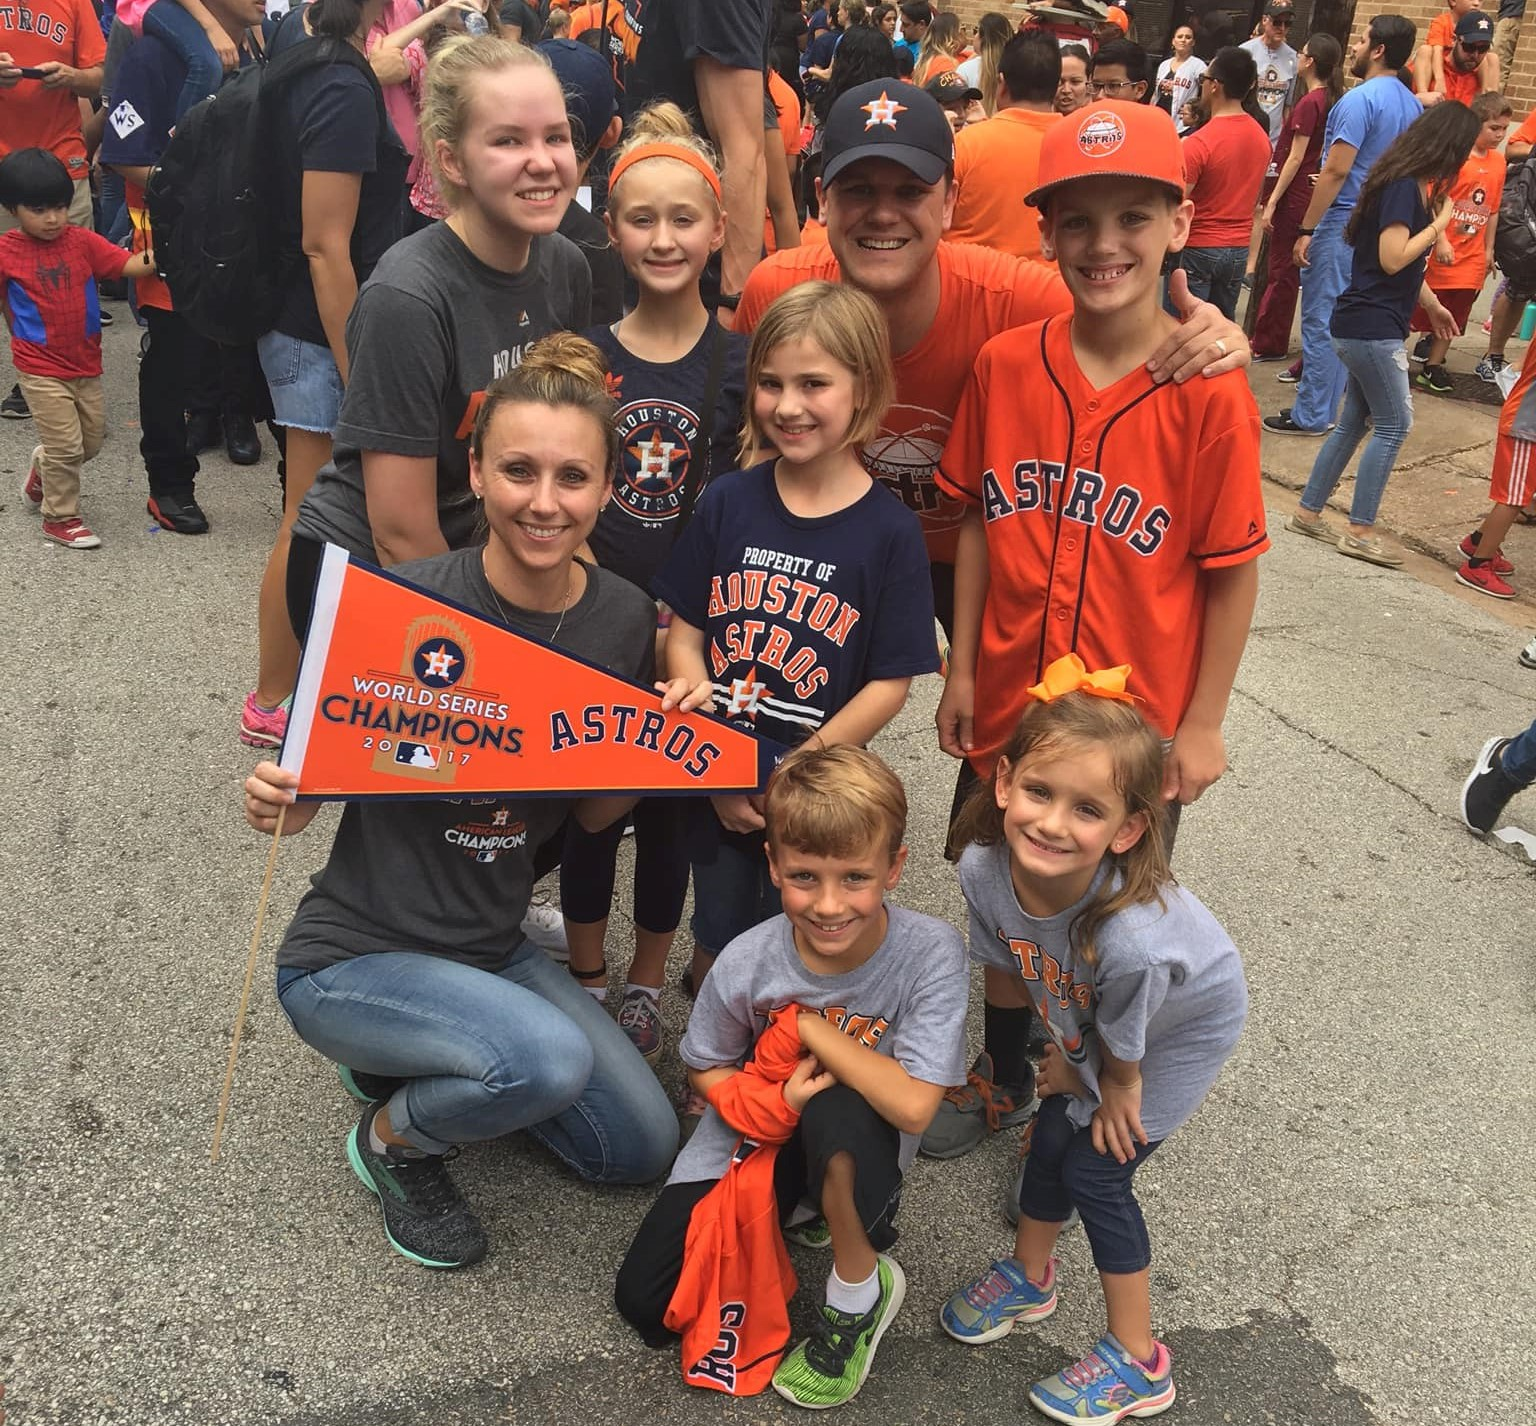 family huddled in Astros gear and pendant